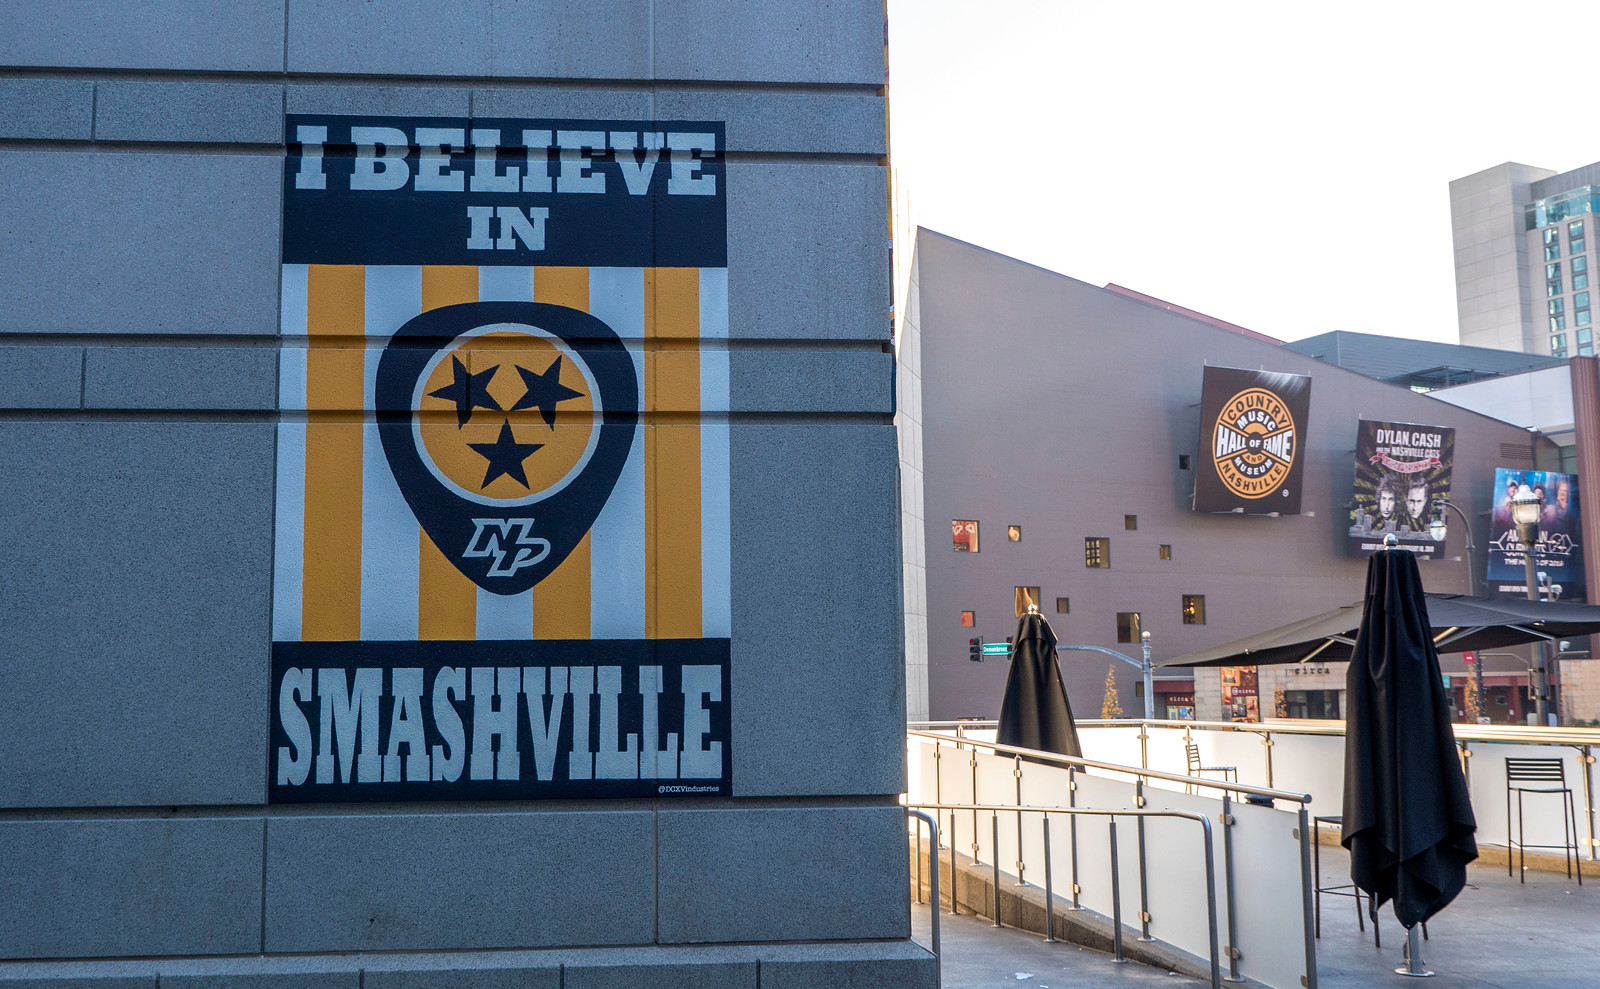 Things to Do in Downtown Nashville: Best Attractions - Nashville Predators